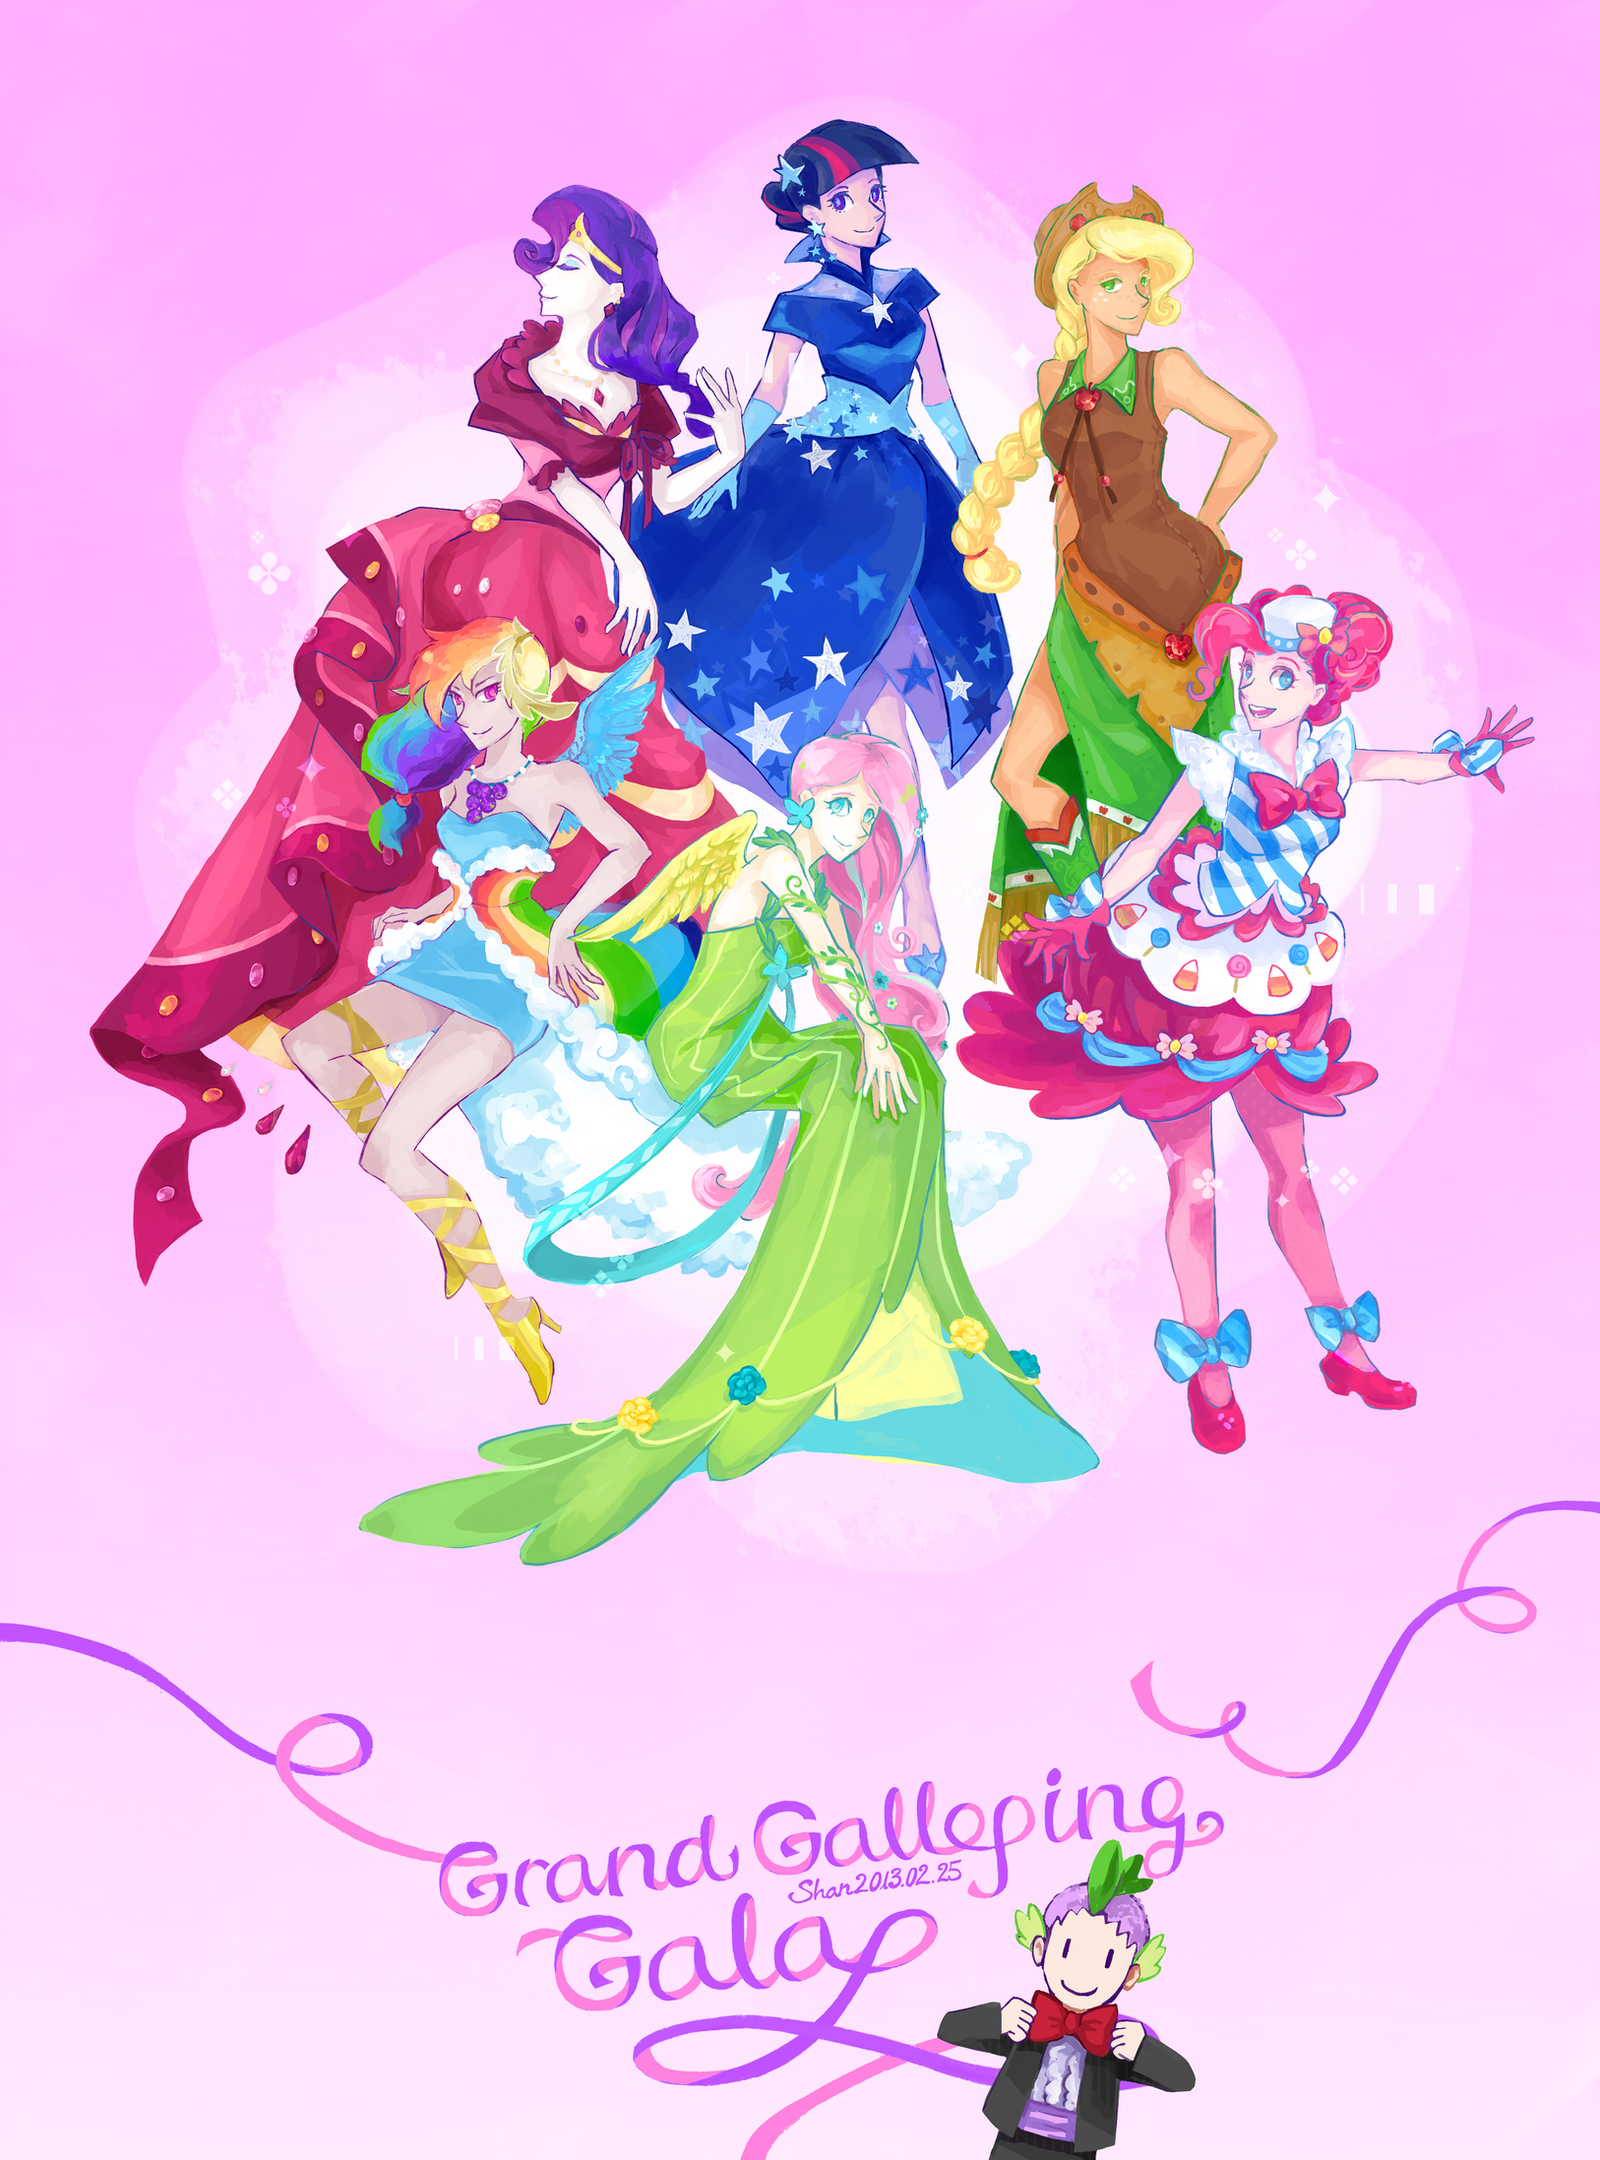 At the Gala by s0901